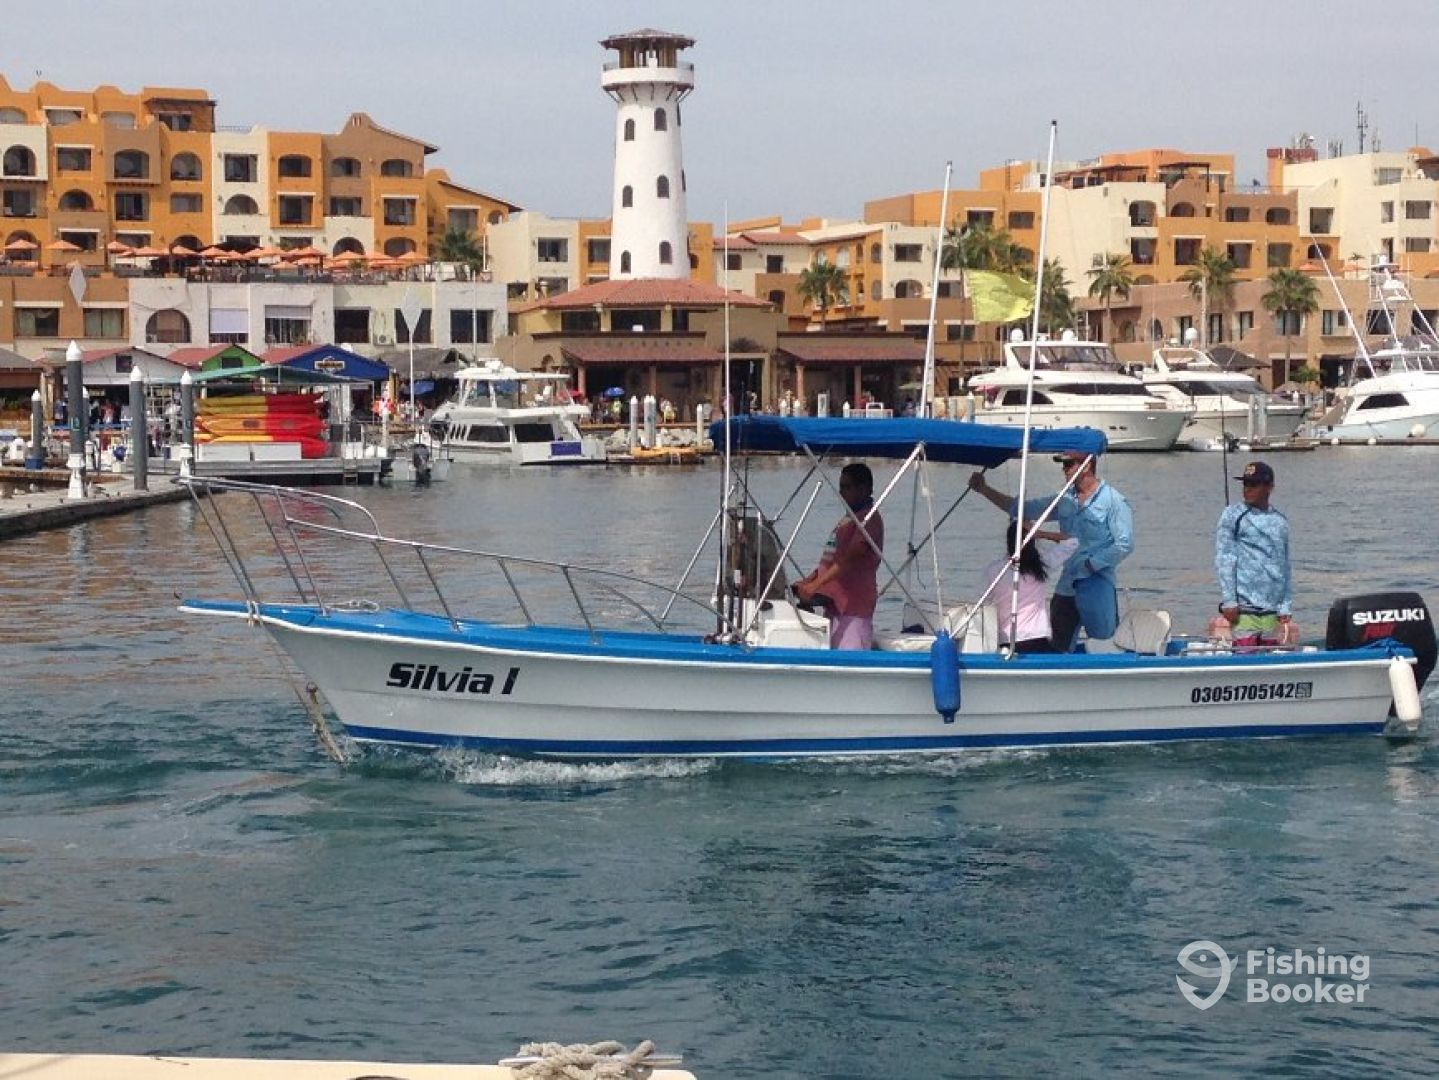 Charly fleet super panga cabo san lucas mexico for Cabo san lucas fishing charters prices